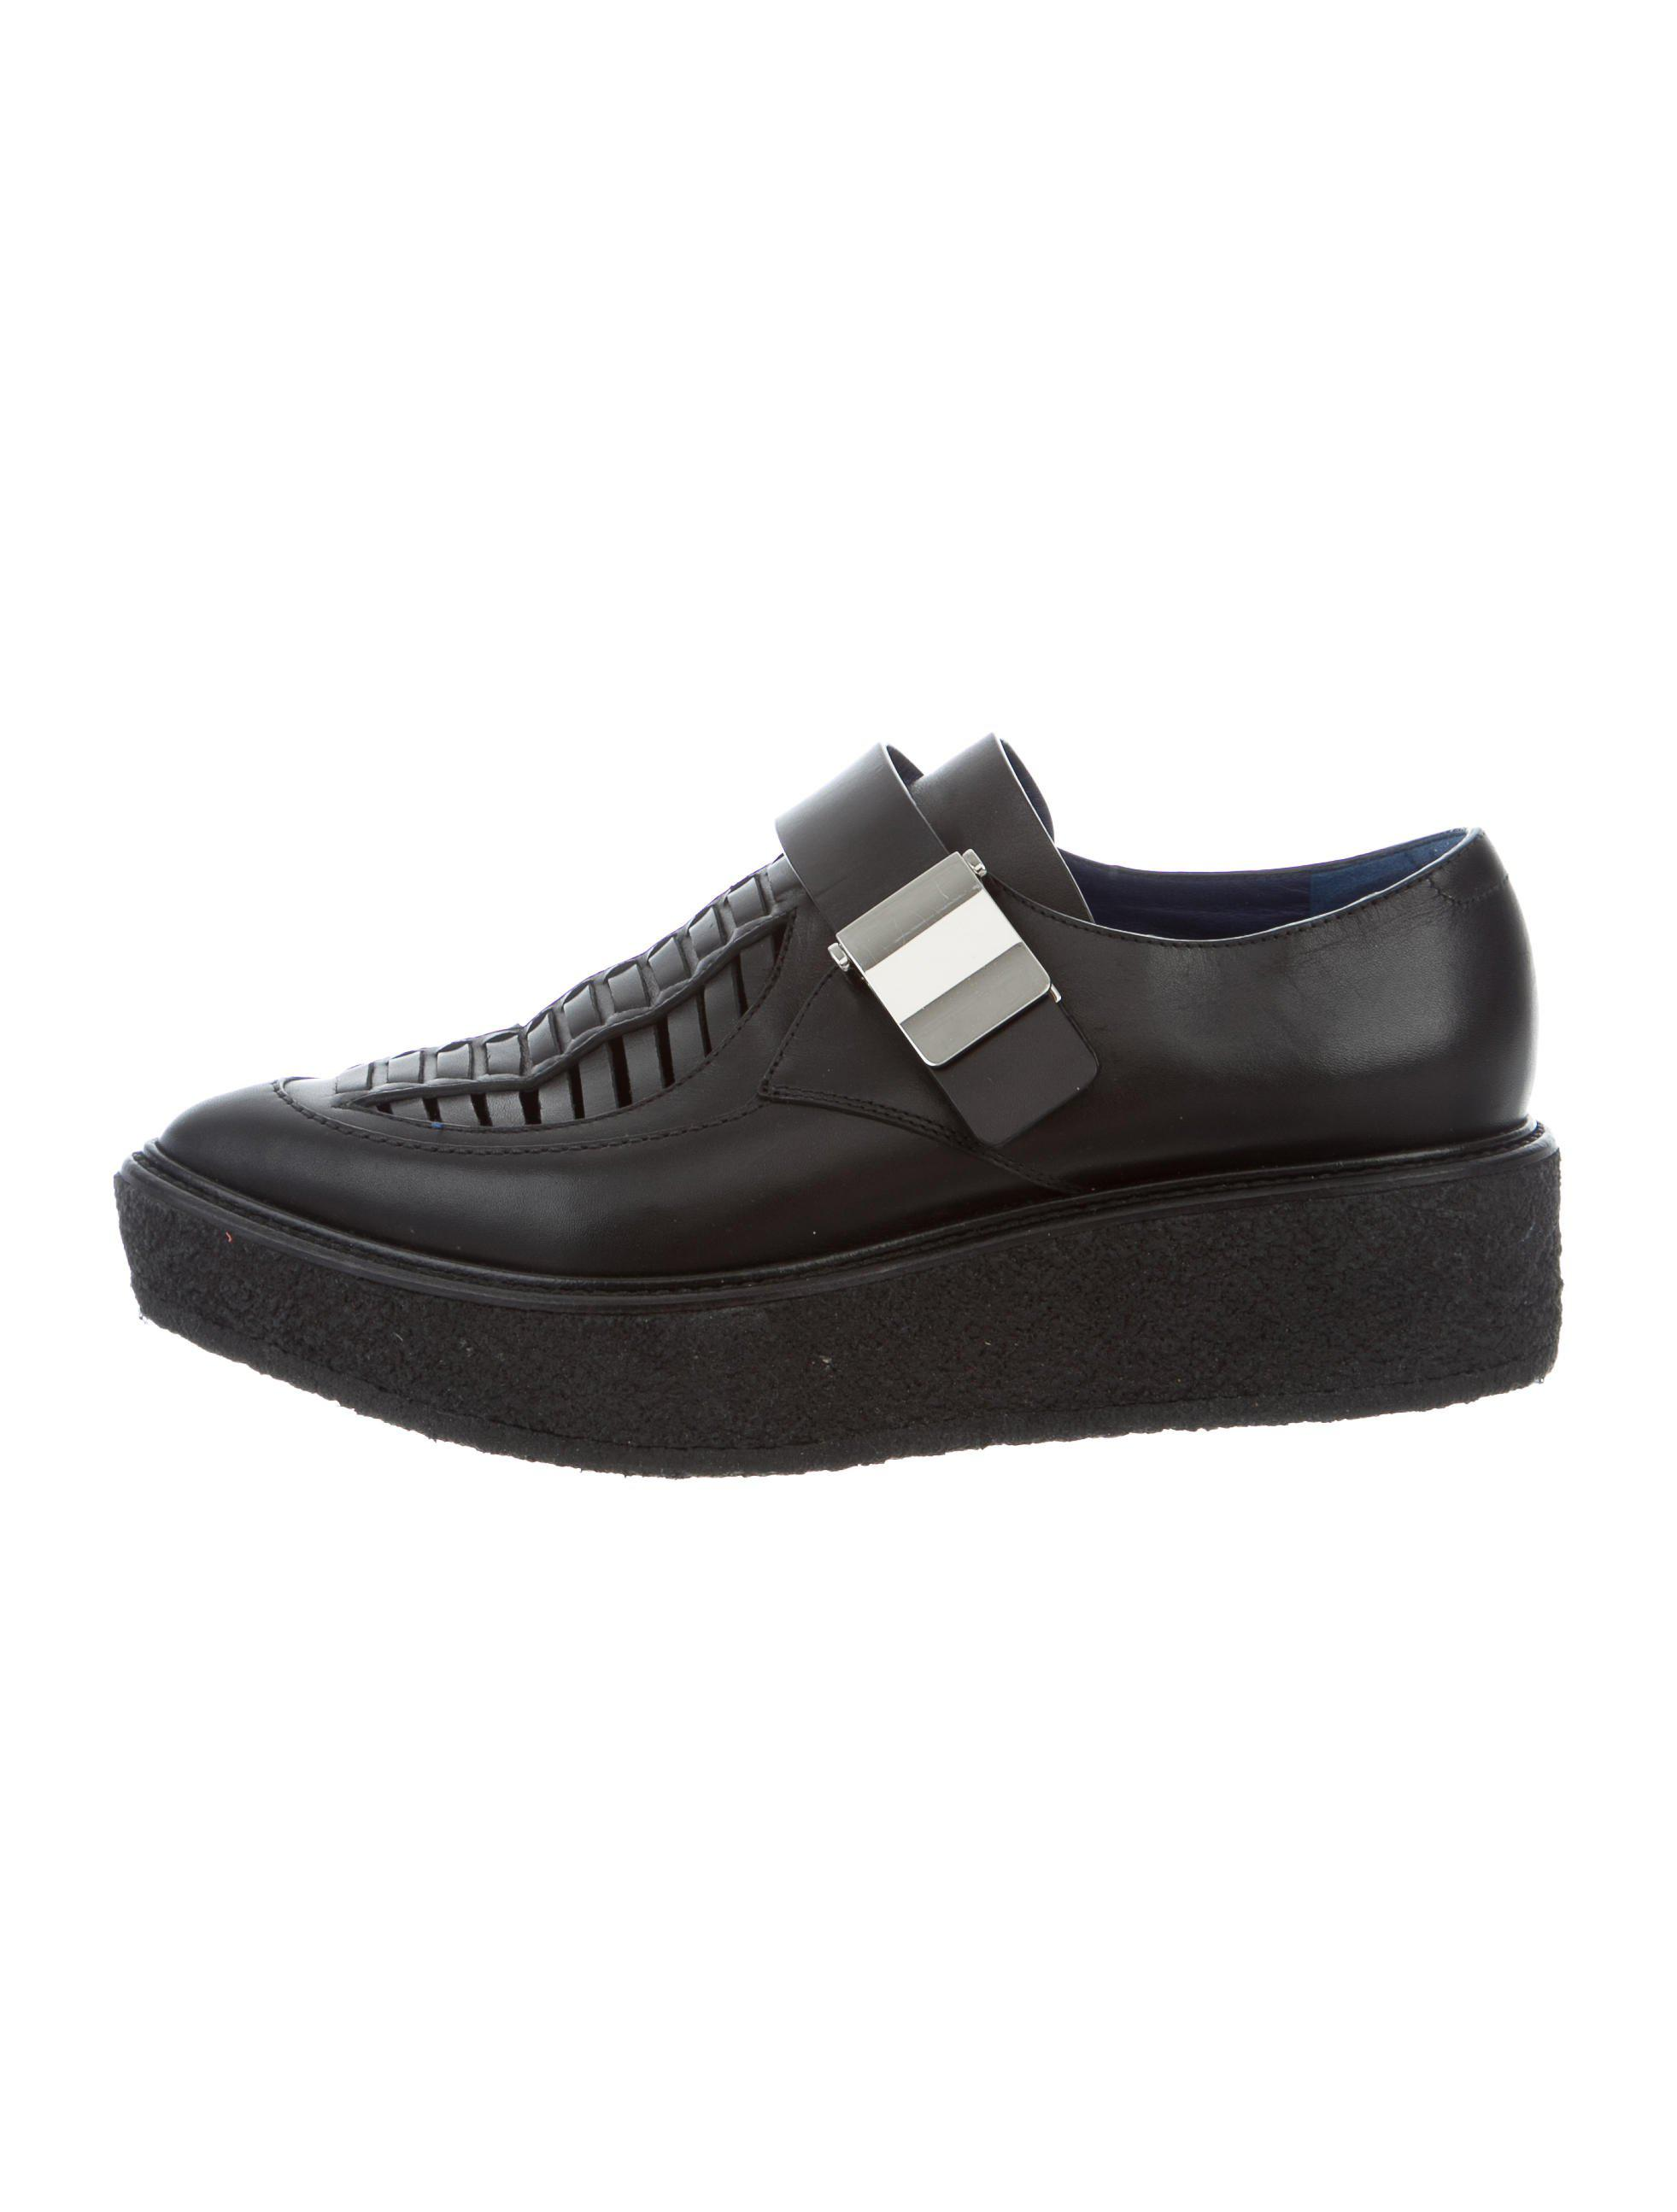 Proenza Schouler Leather Platform Oxfords buy cheap clearance cheap newest 0zxS5